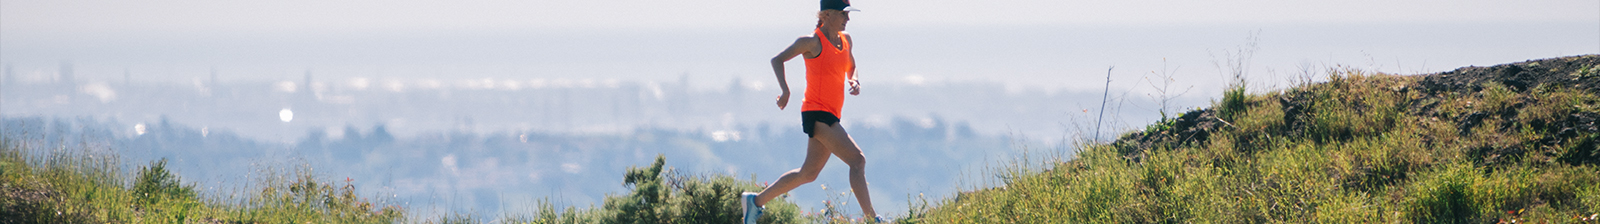 Saucony - Men's Running and Casual Shoes and Apparel